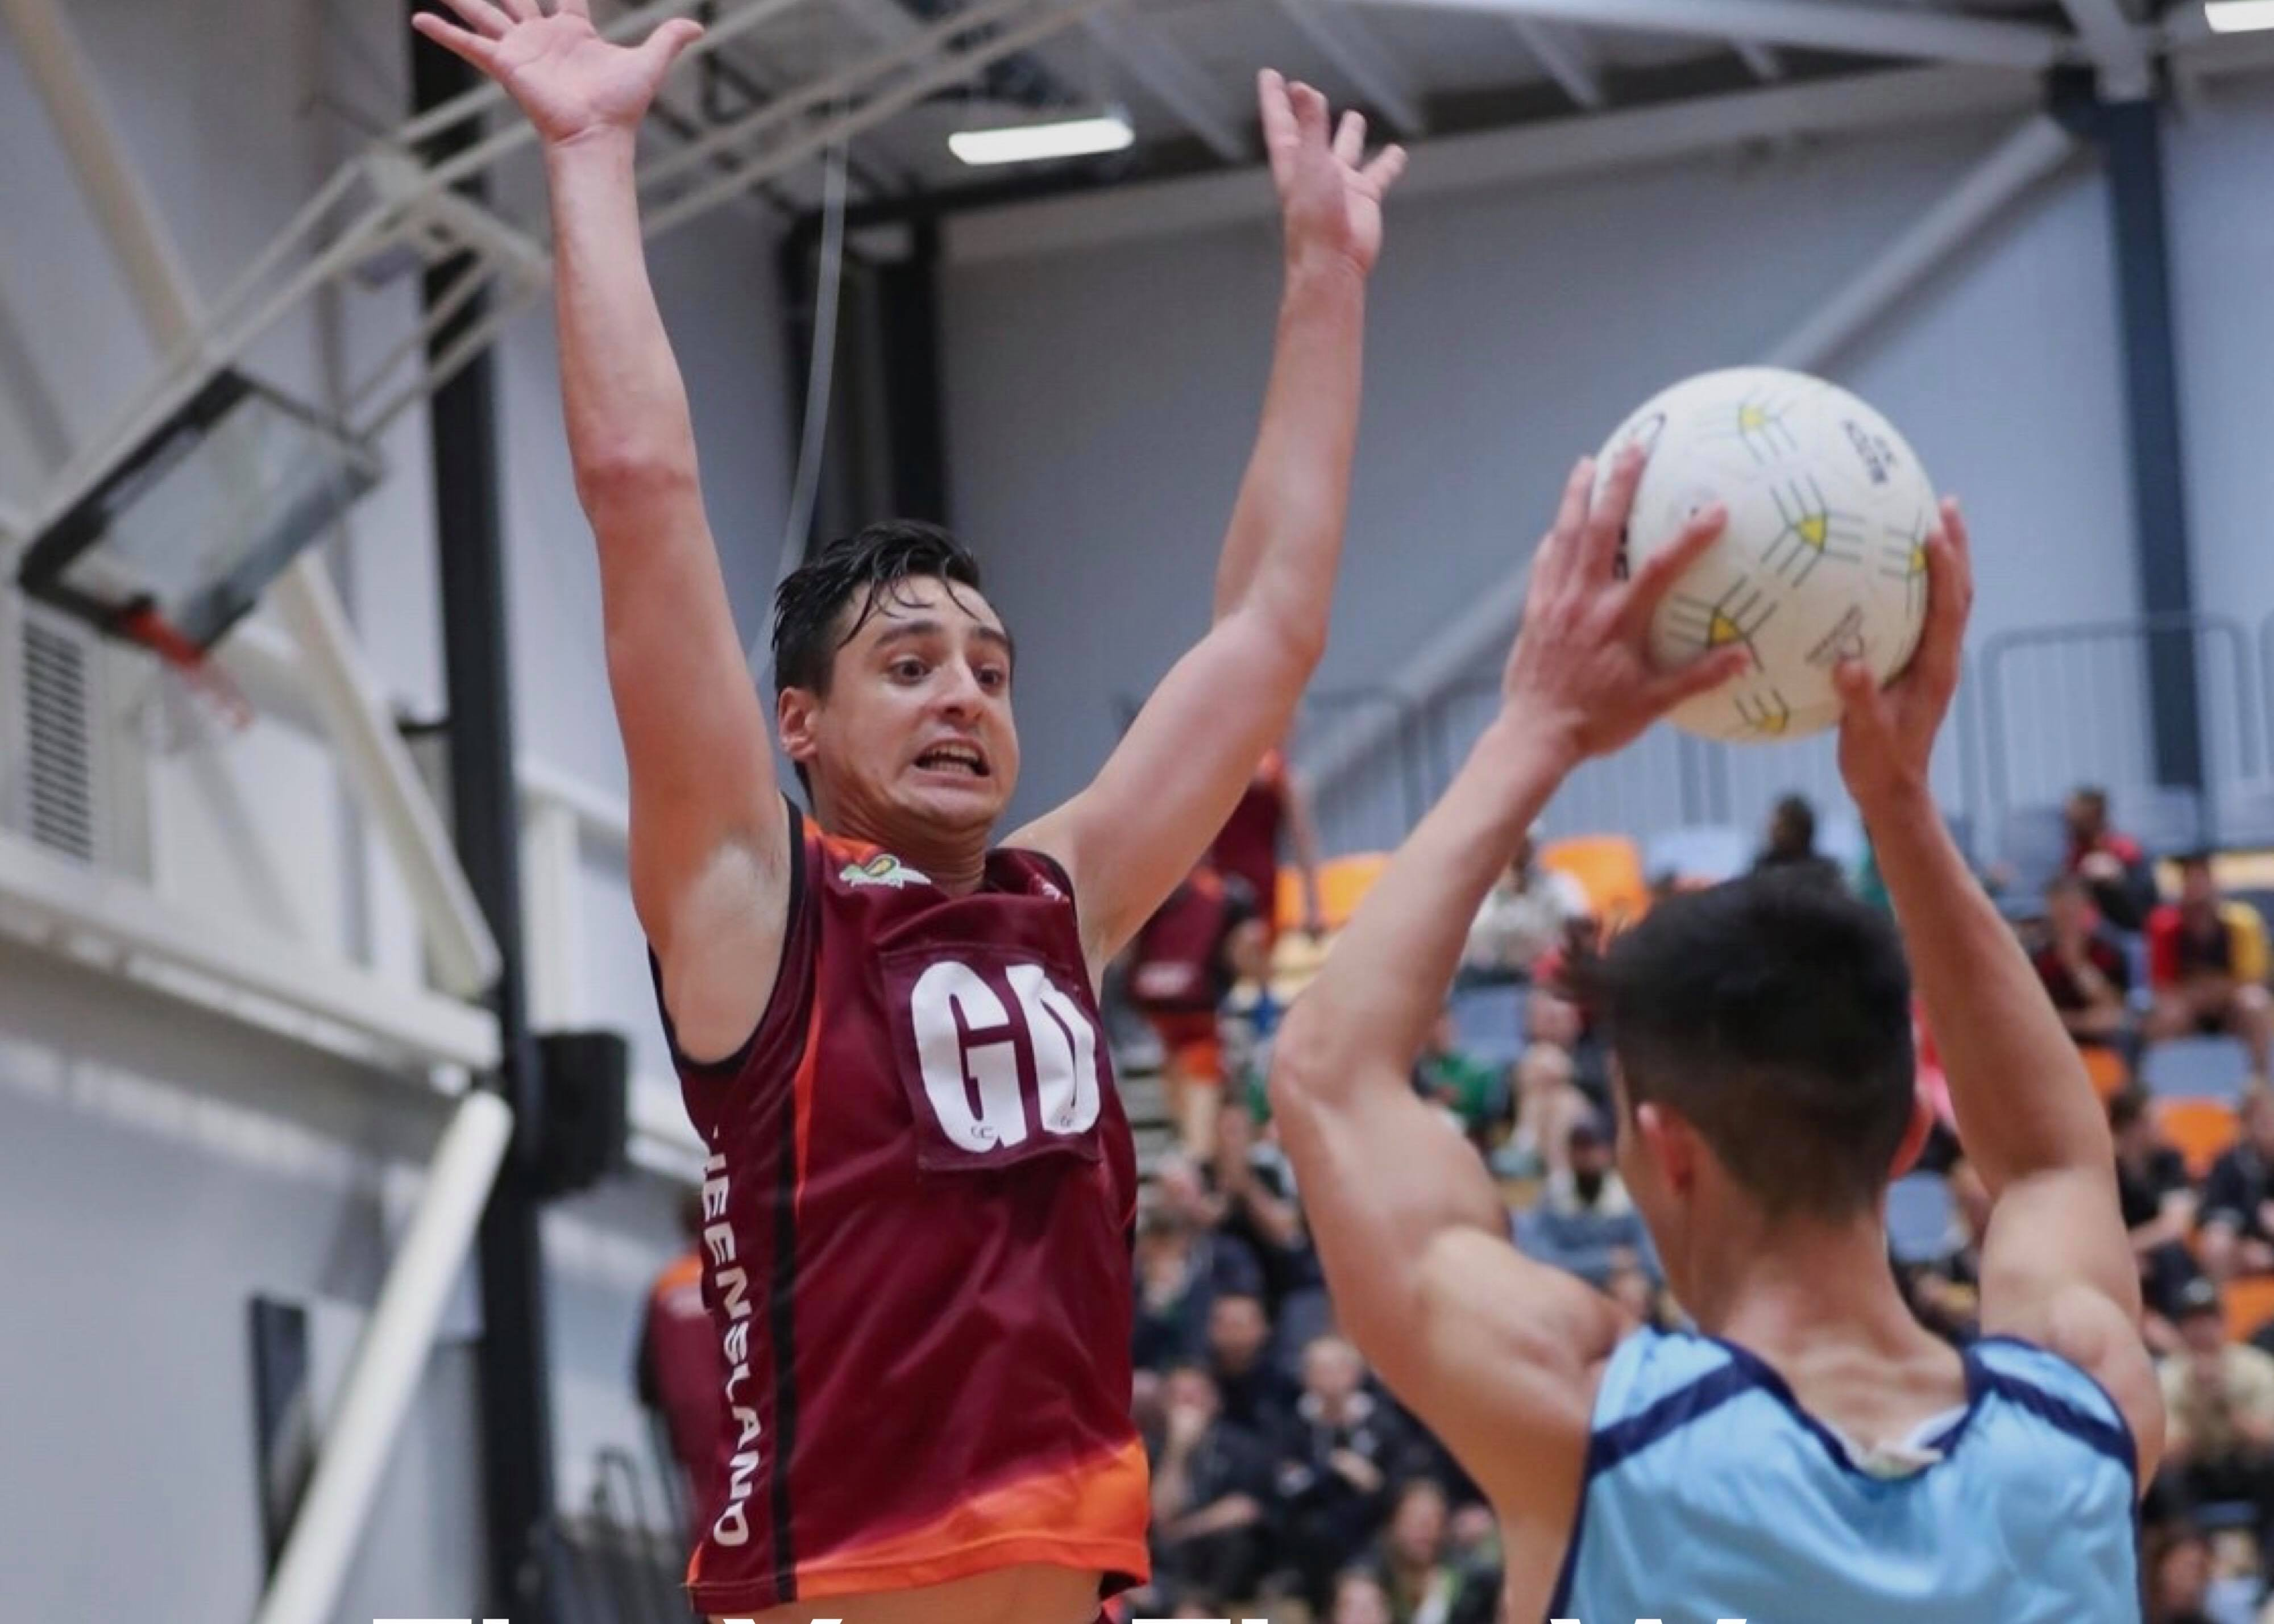 Queensland won the 2019 Australian Championships Men's Open division. Image: Clusterpix Photography